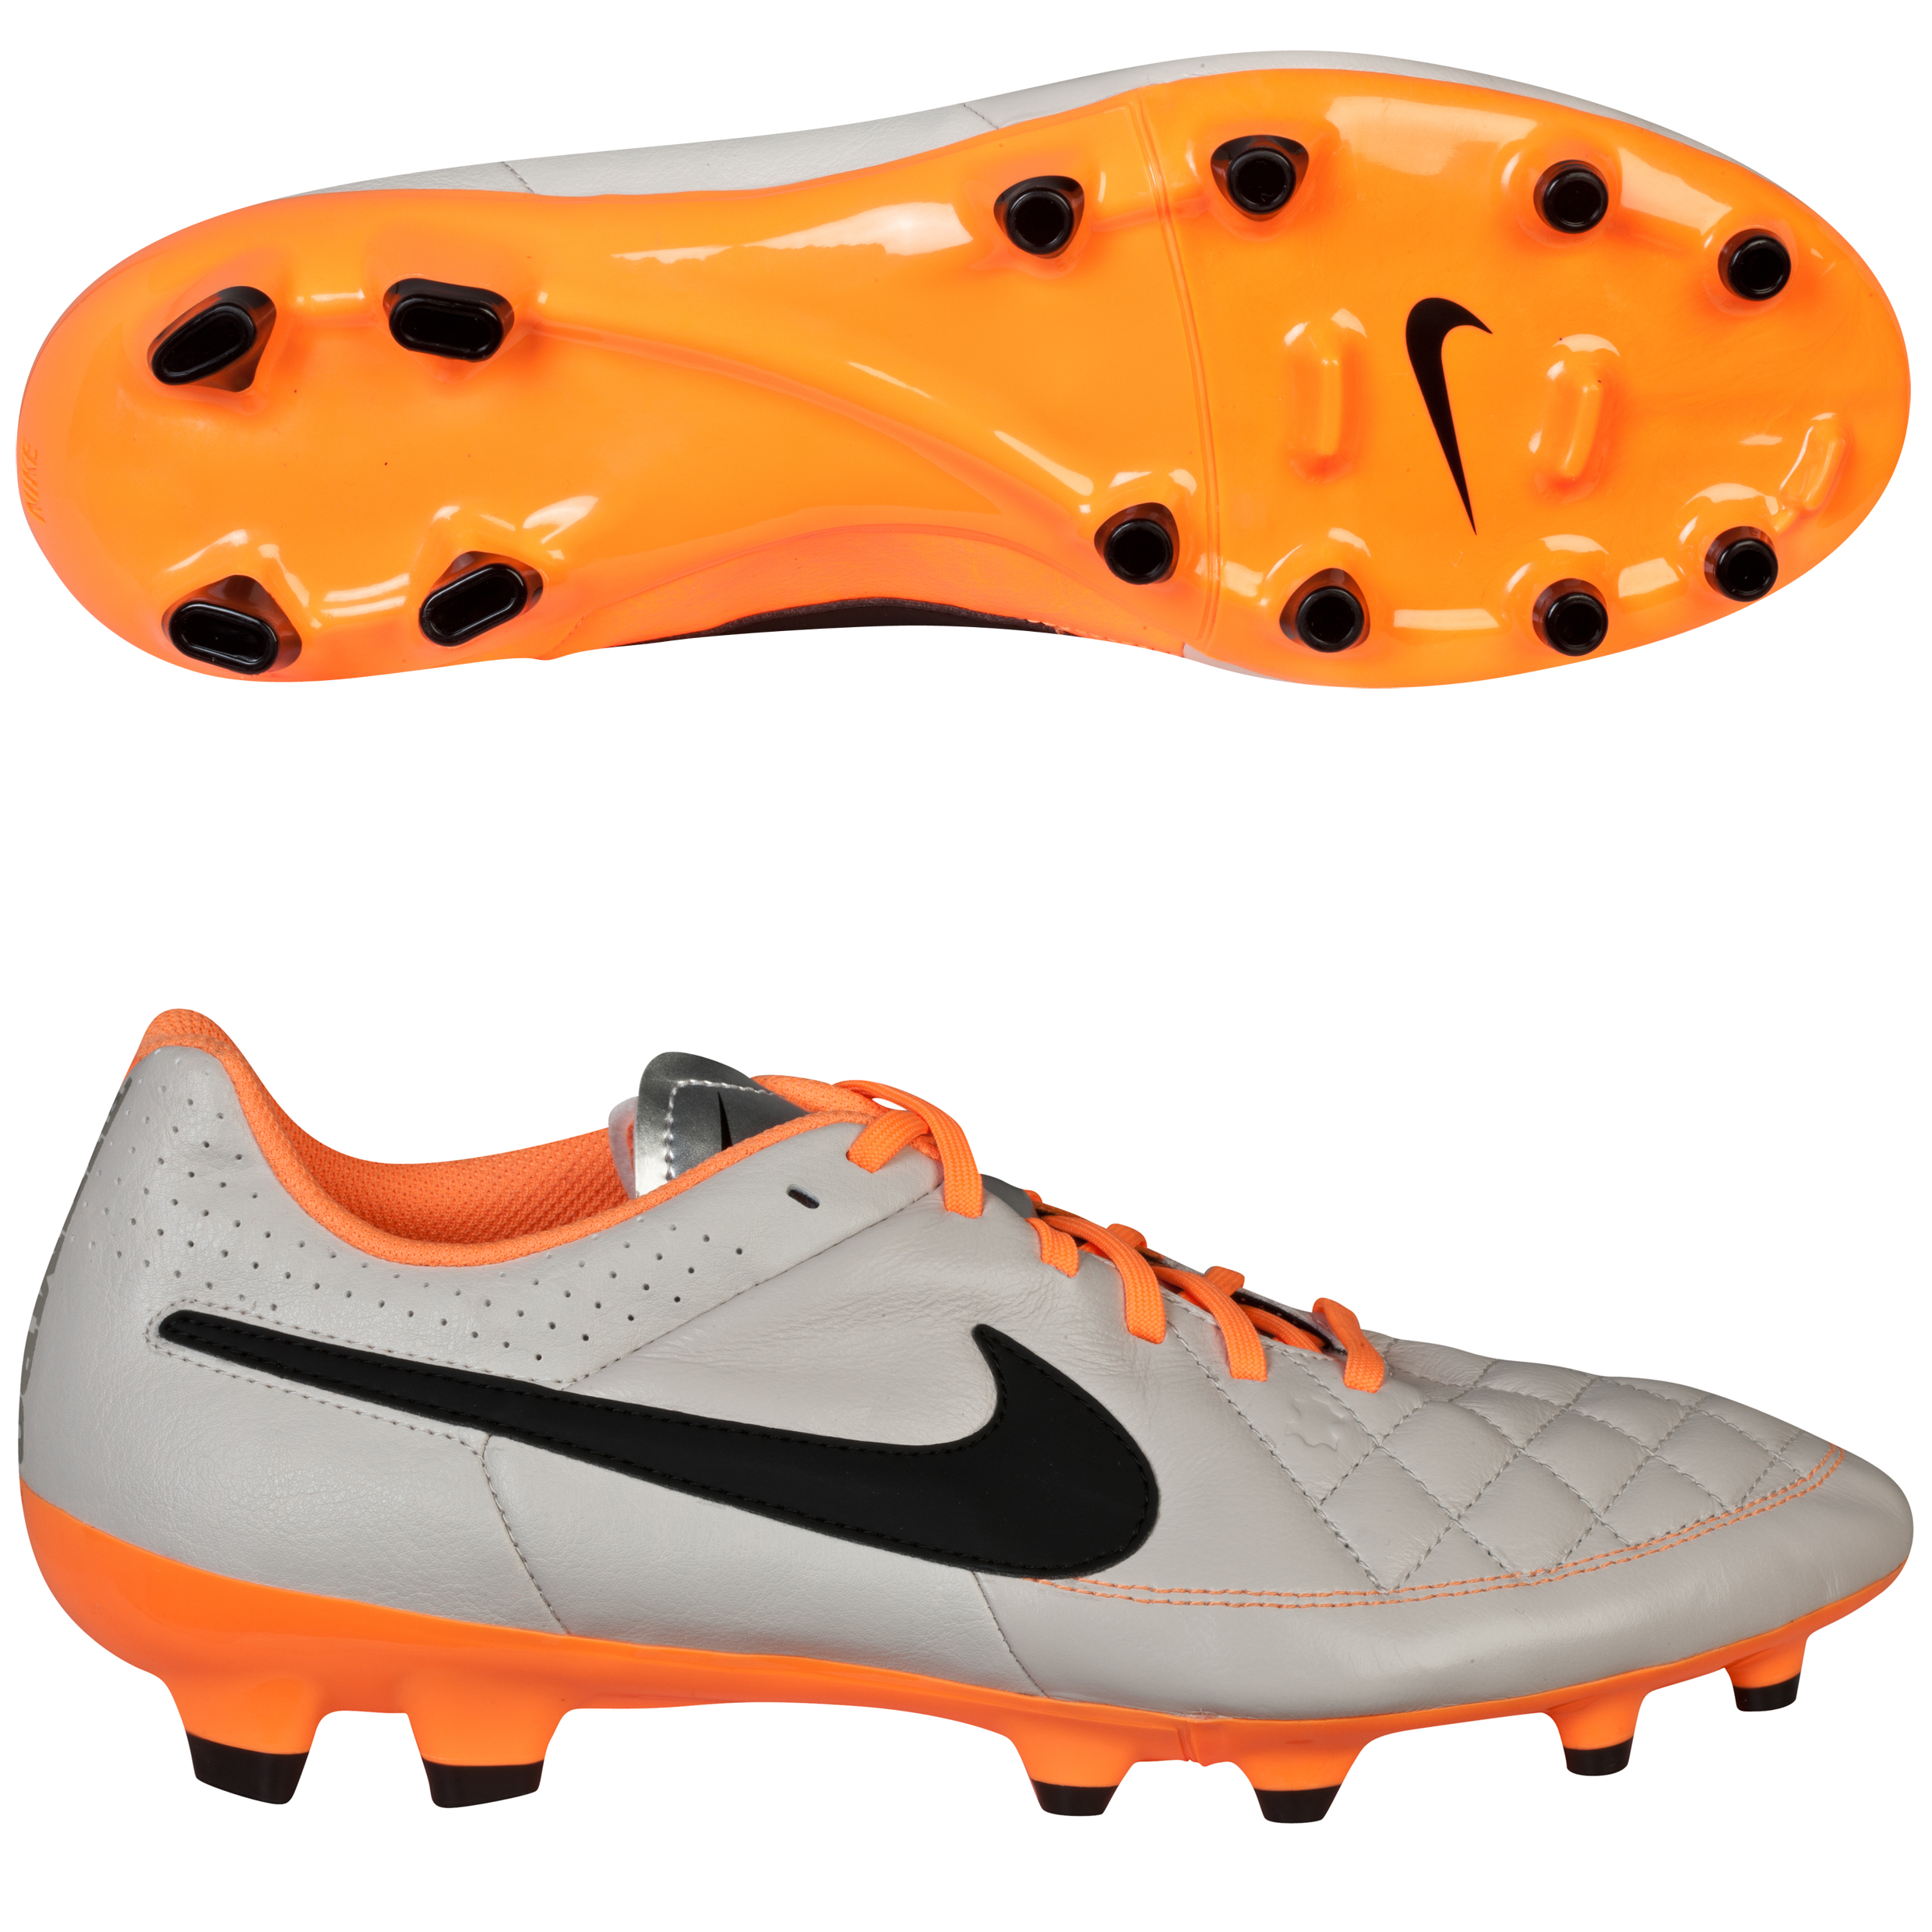 Nike Tiempo Genio Firm Ground Football Boots Beige